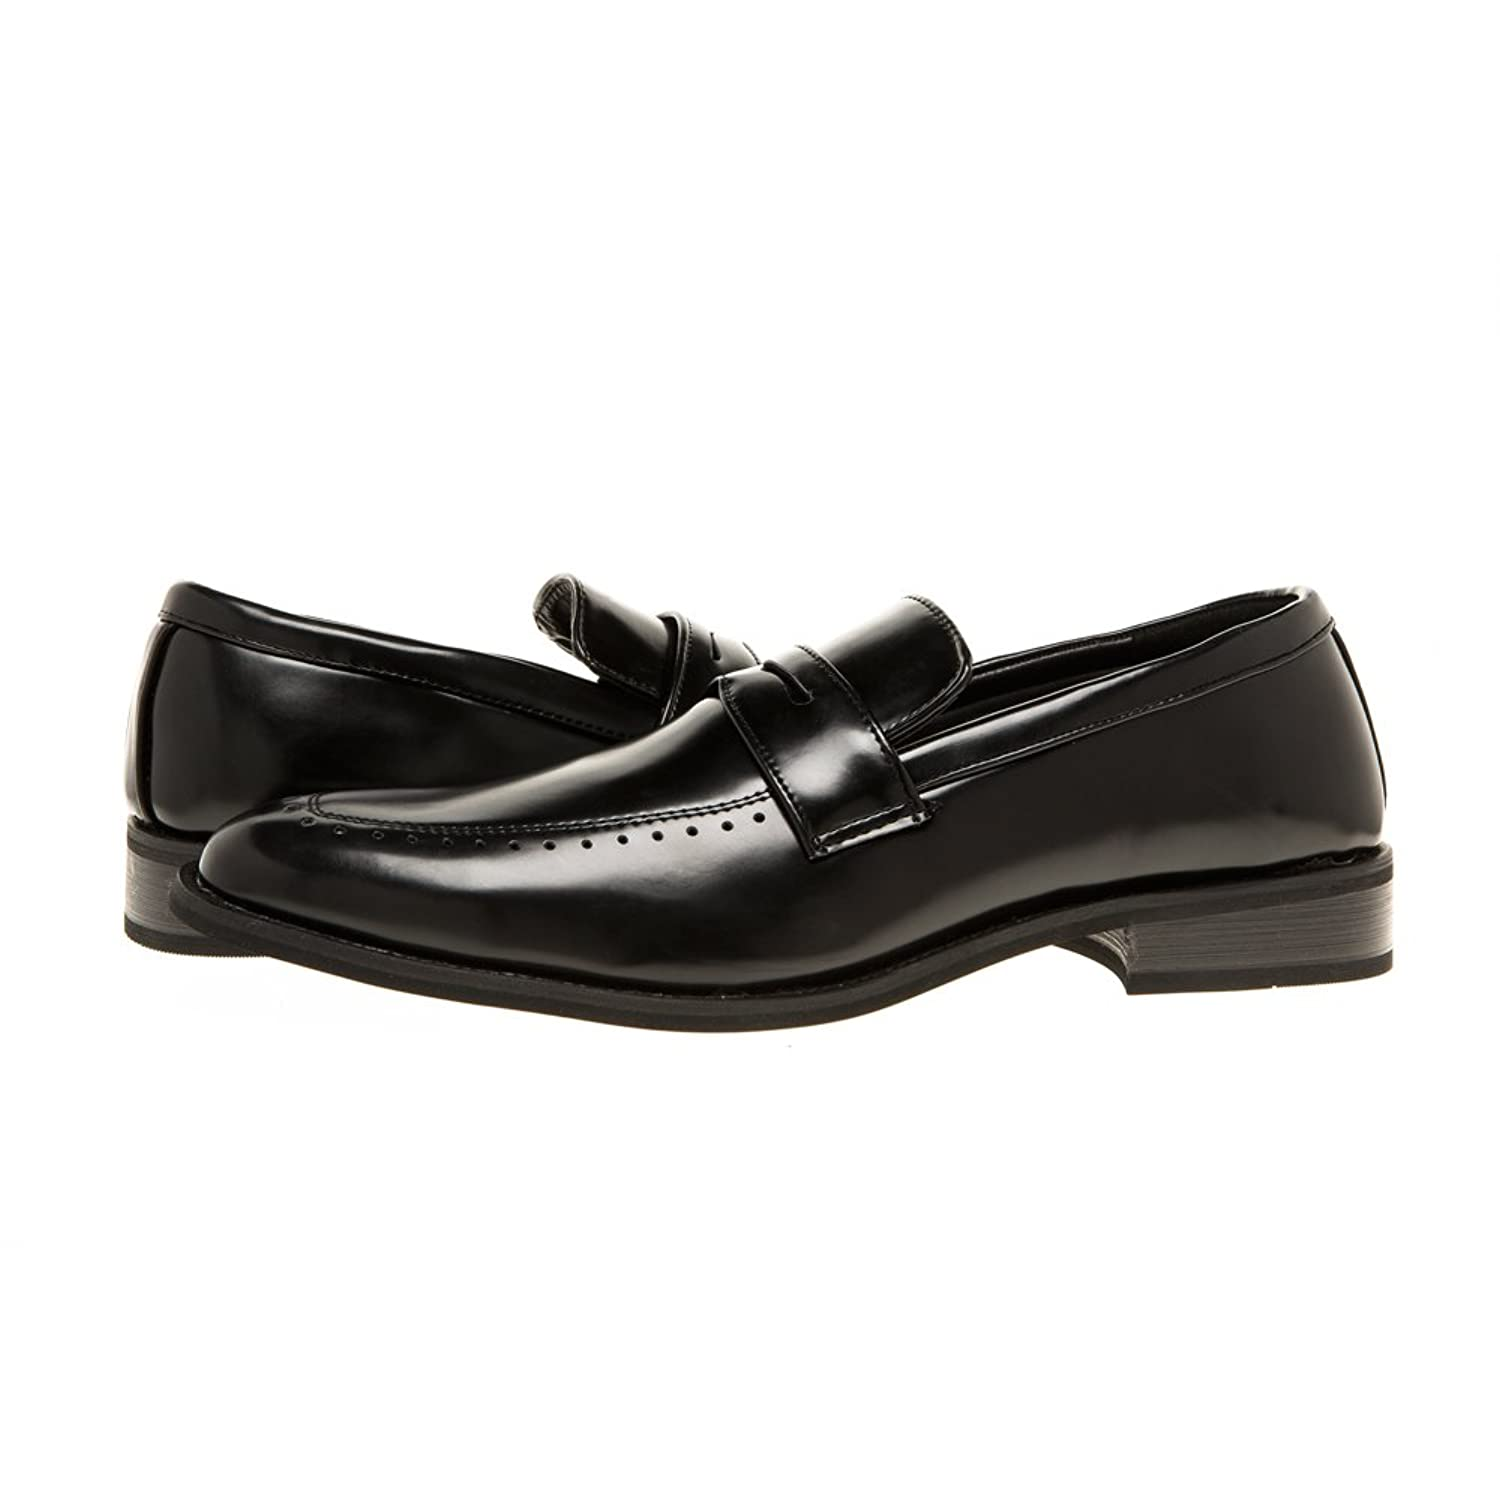 Mens Classic Loafer Perforated Slip-On Shoes